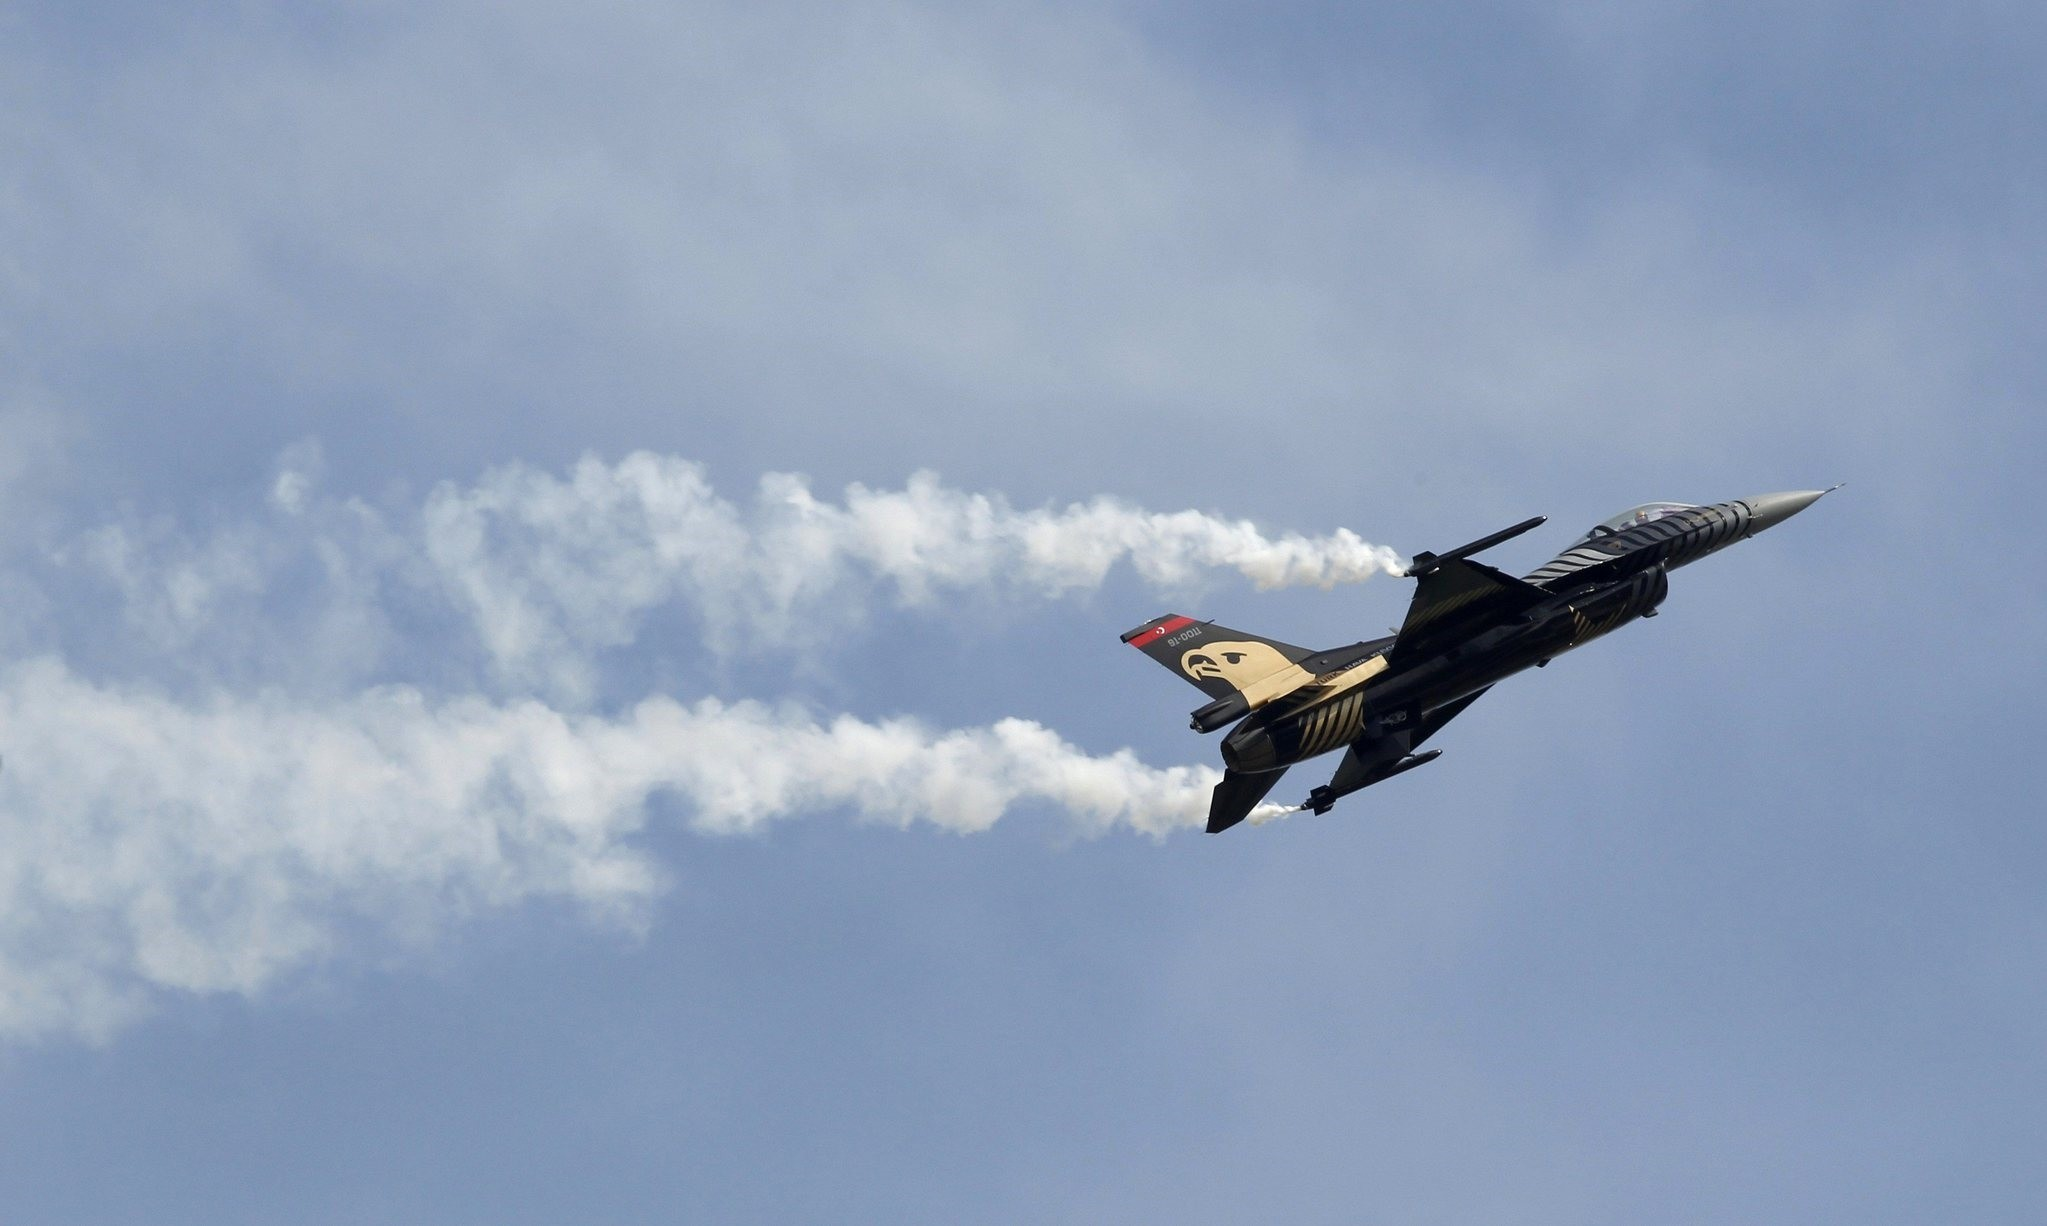 A F-16 Solo Display Team performs over the Akinci Millitary Air Base during an event as part of celebrations of the 100th anniversary of the Turkish Air Force in Ankara April 15, 2011. (REUTERS Photo)